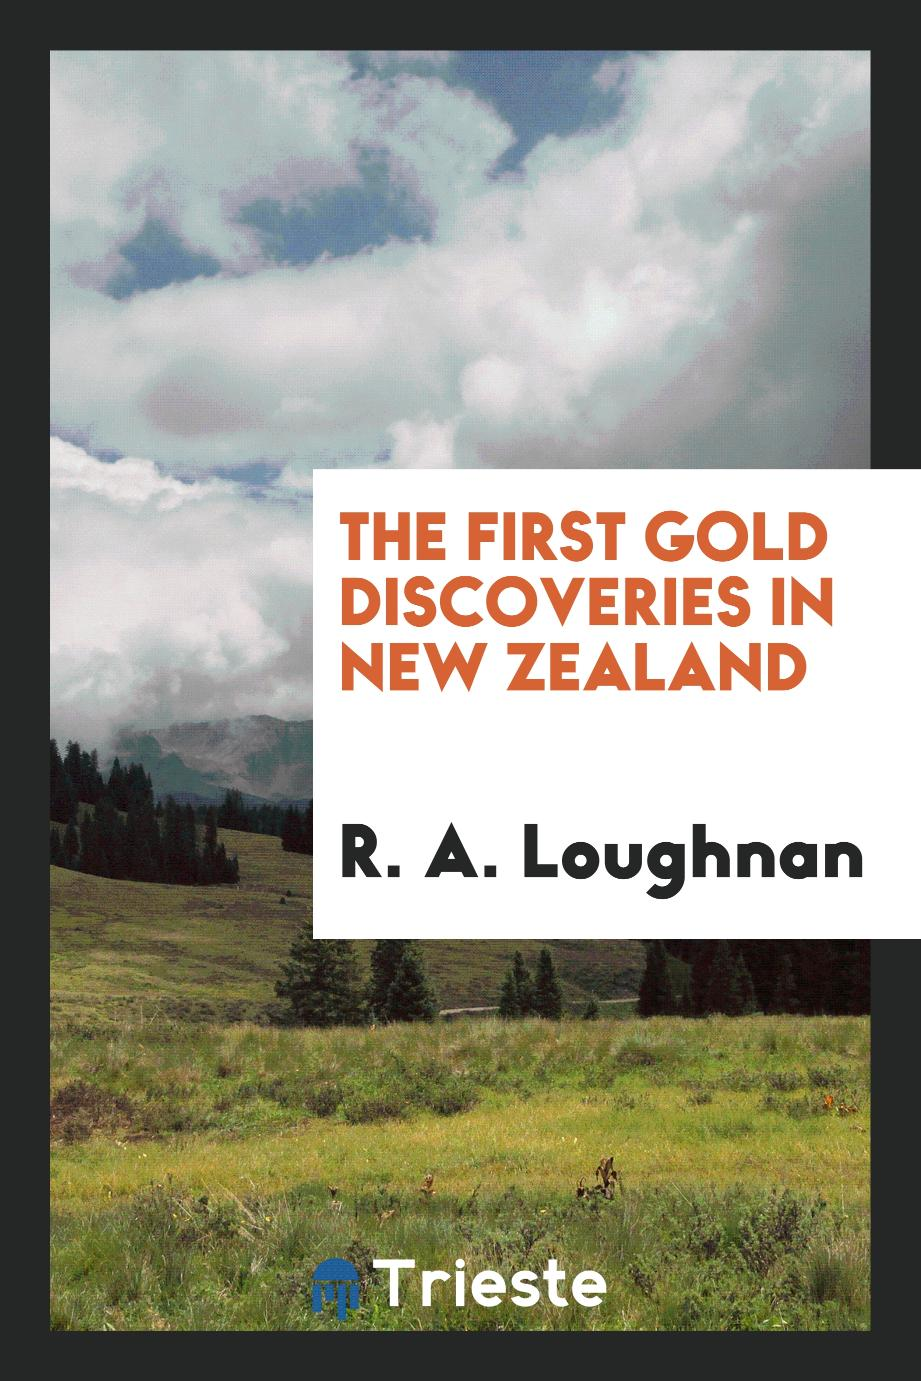 The First Gold Discoveries in New Zealand